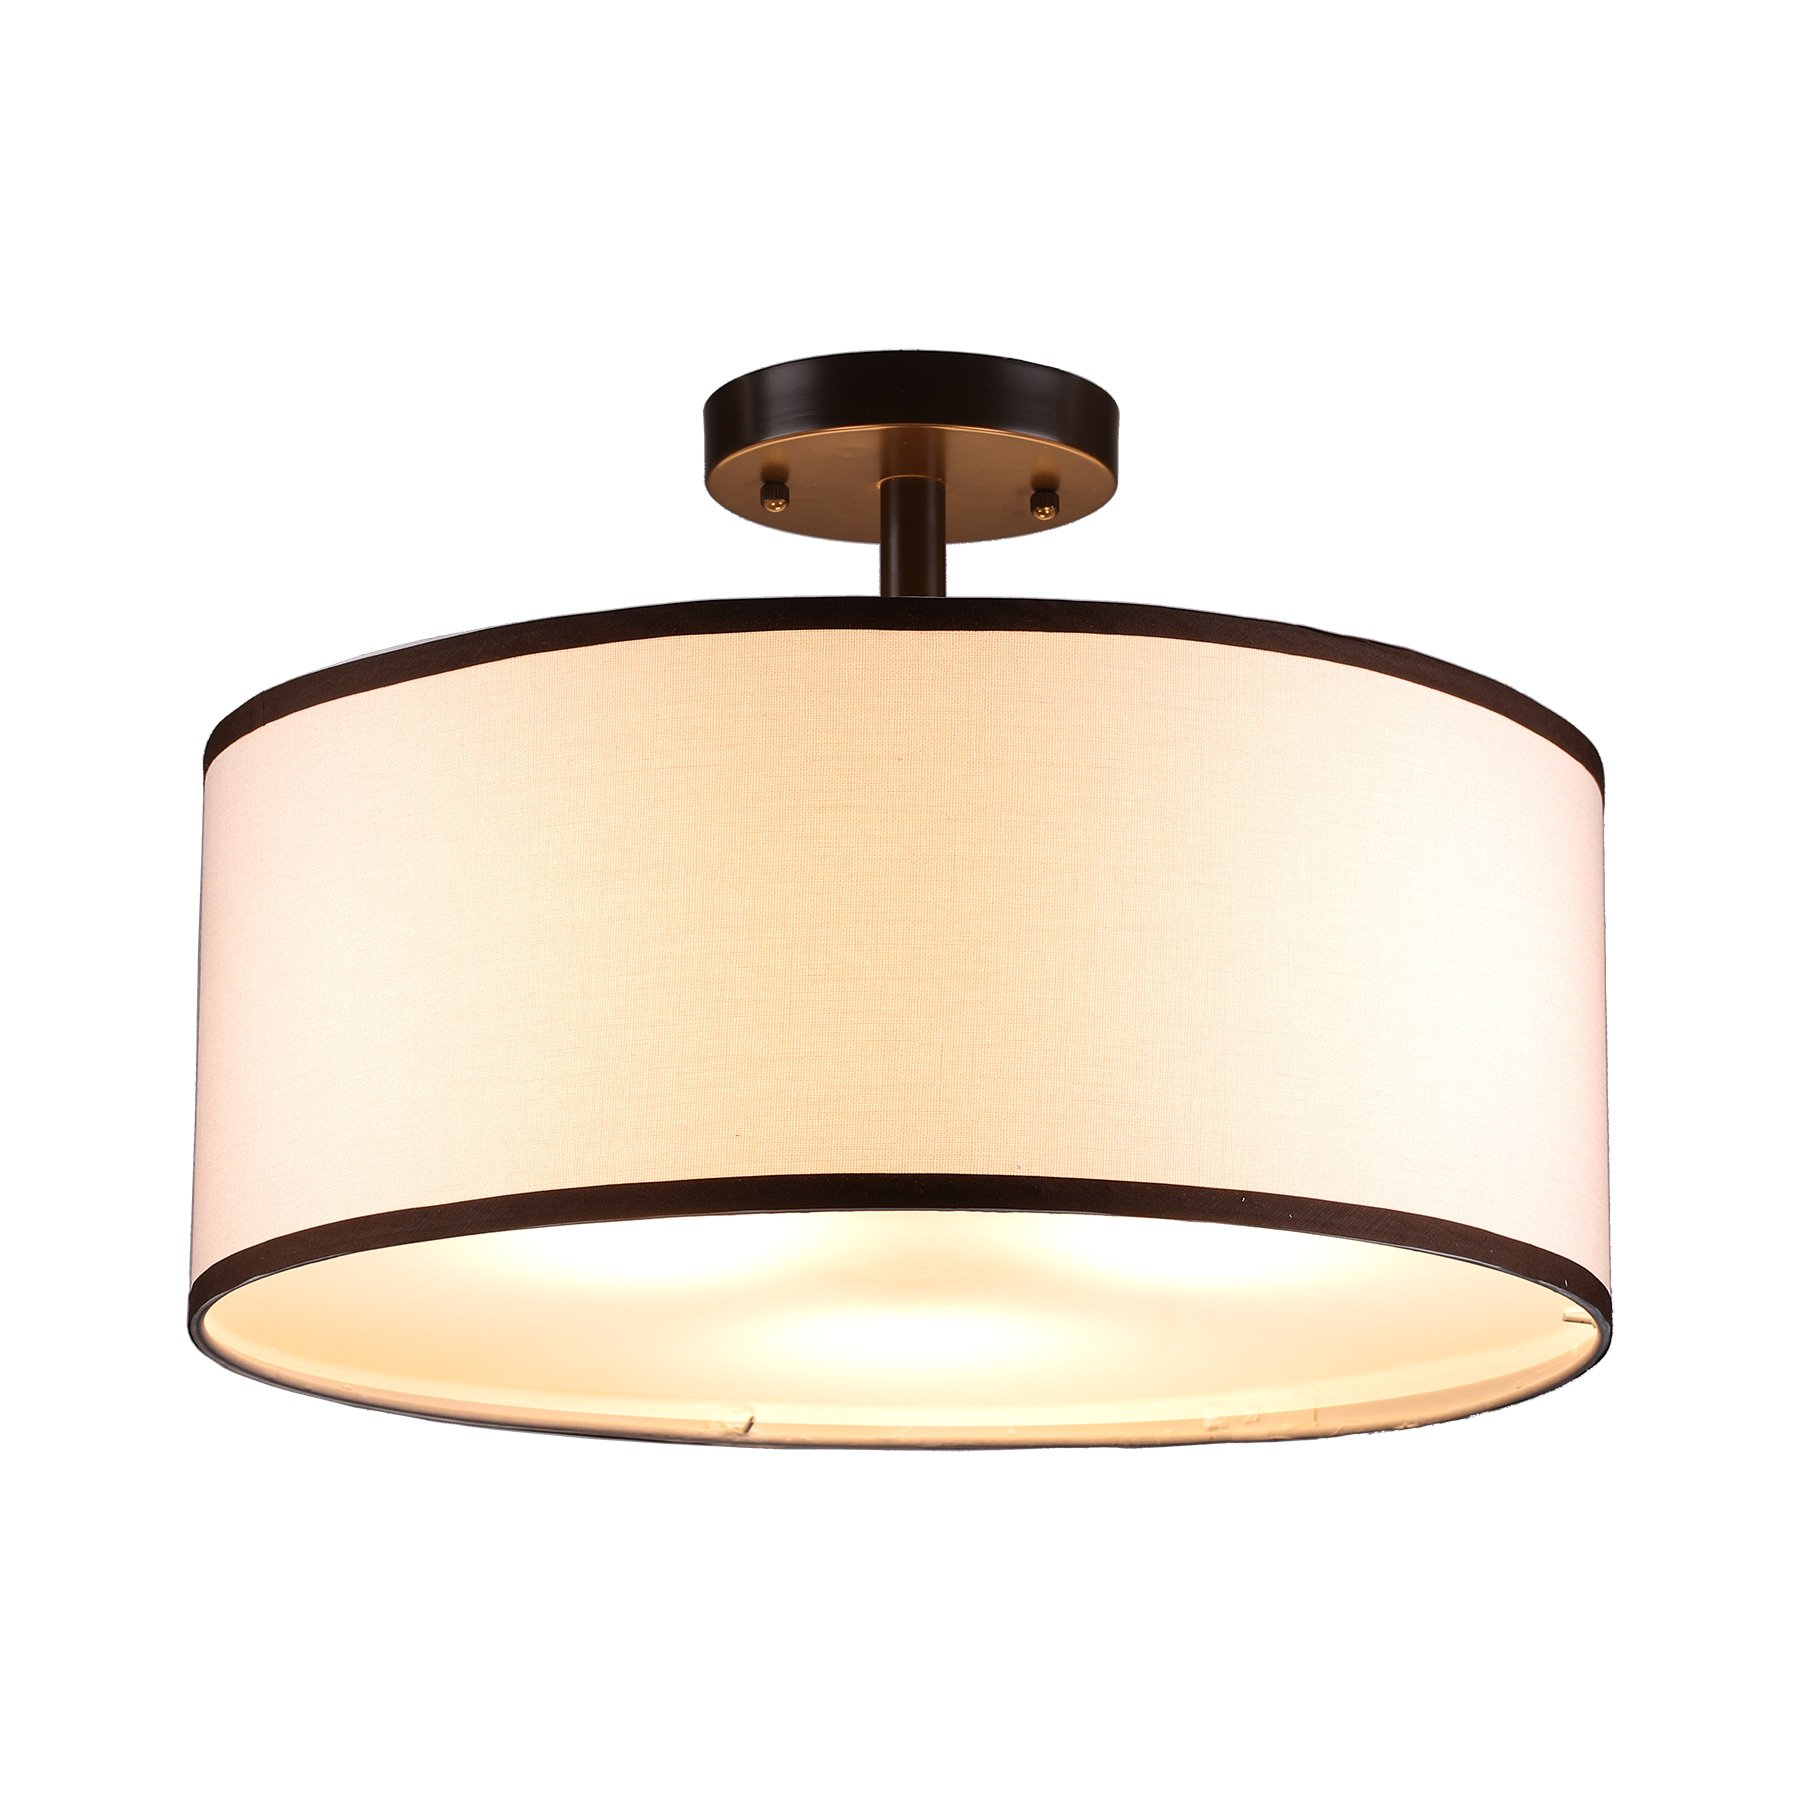 CO-Z Drum Light, Bronze Finished 3 Light Drum Chandelier, Semi-Flush Mount Contemporary Ceiling Lighting Fixture with Diffused Shade for Kitchen, Hallway, Dining Room Table